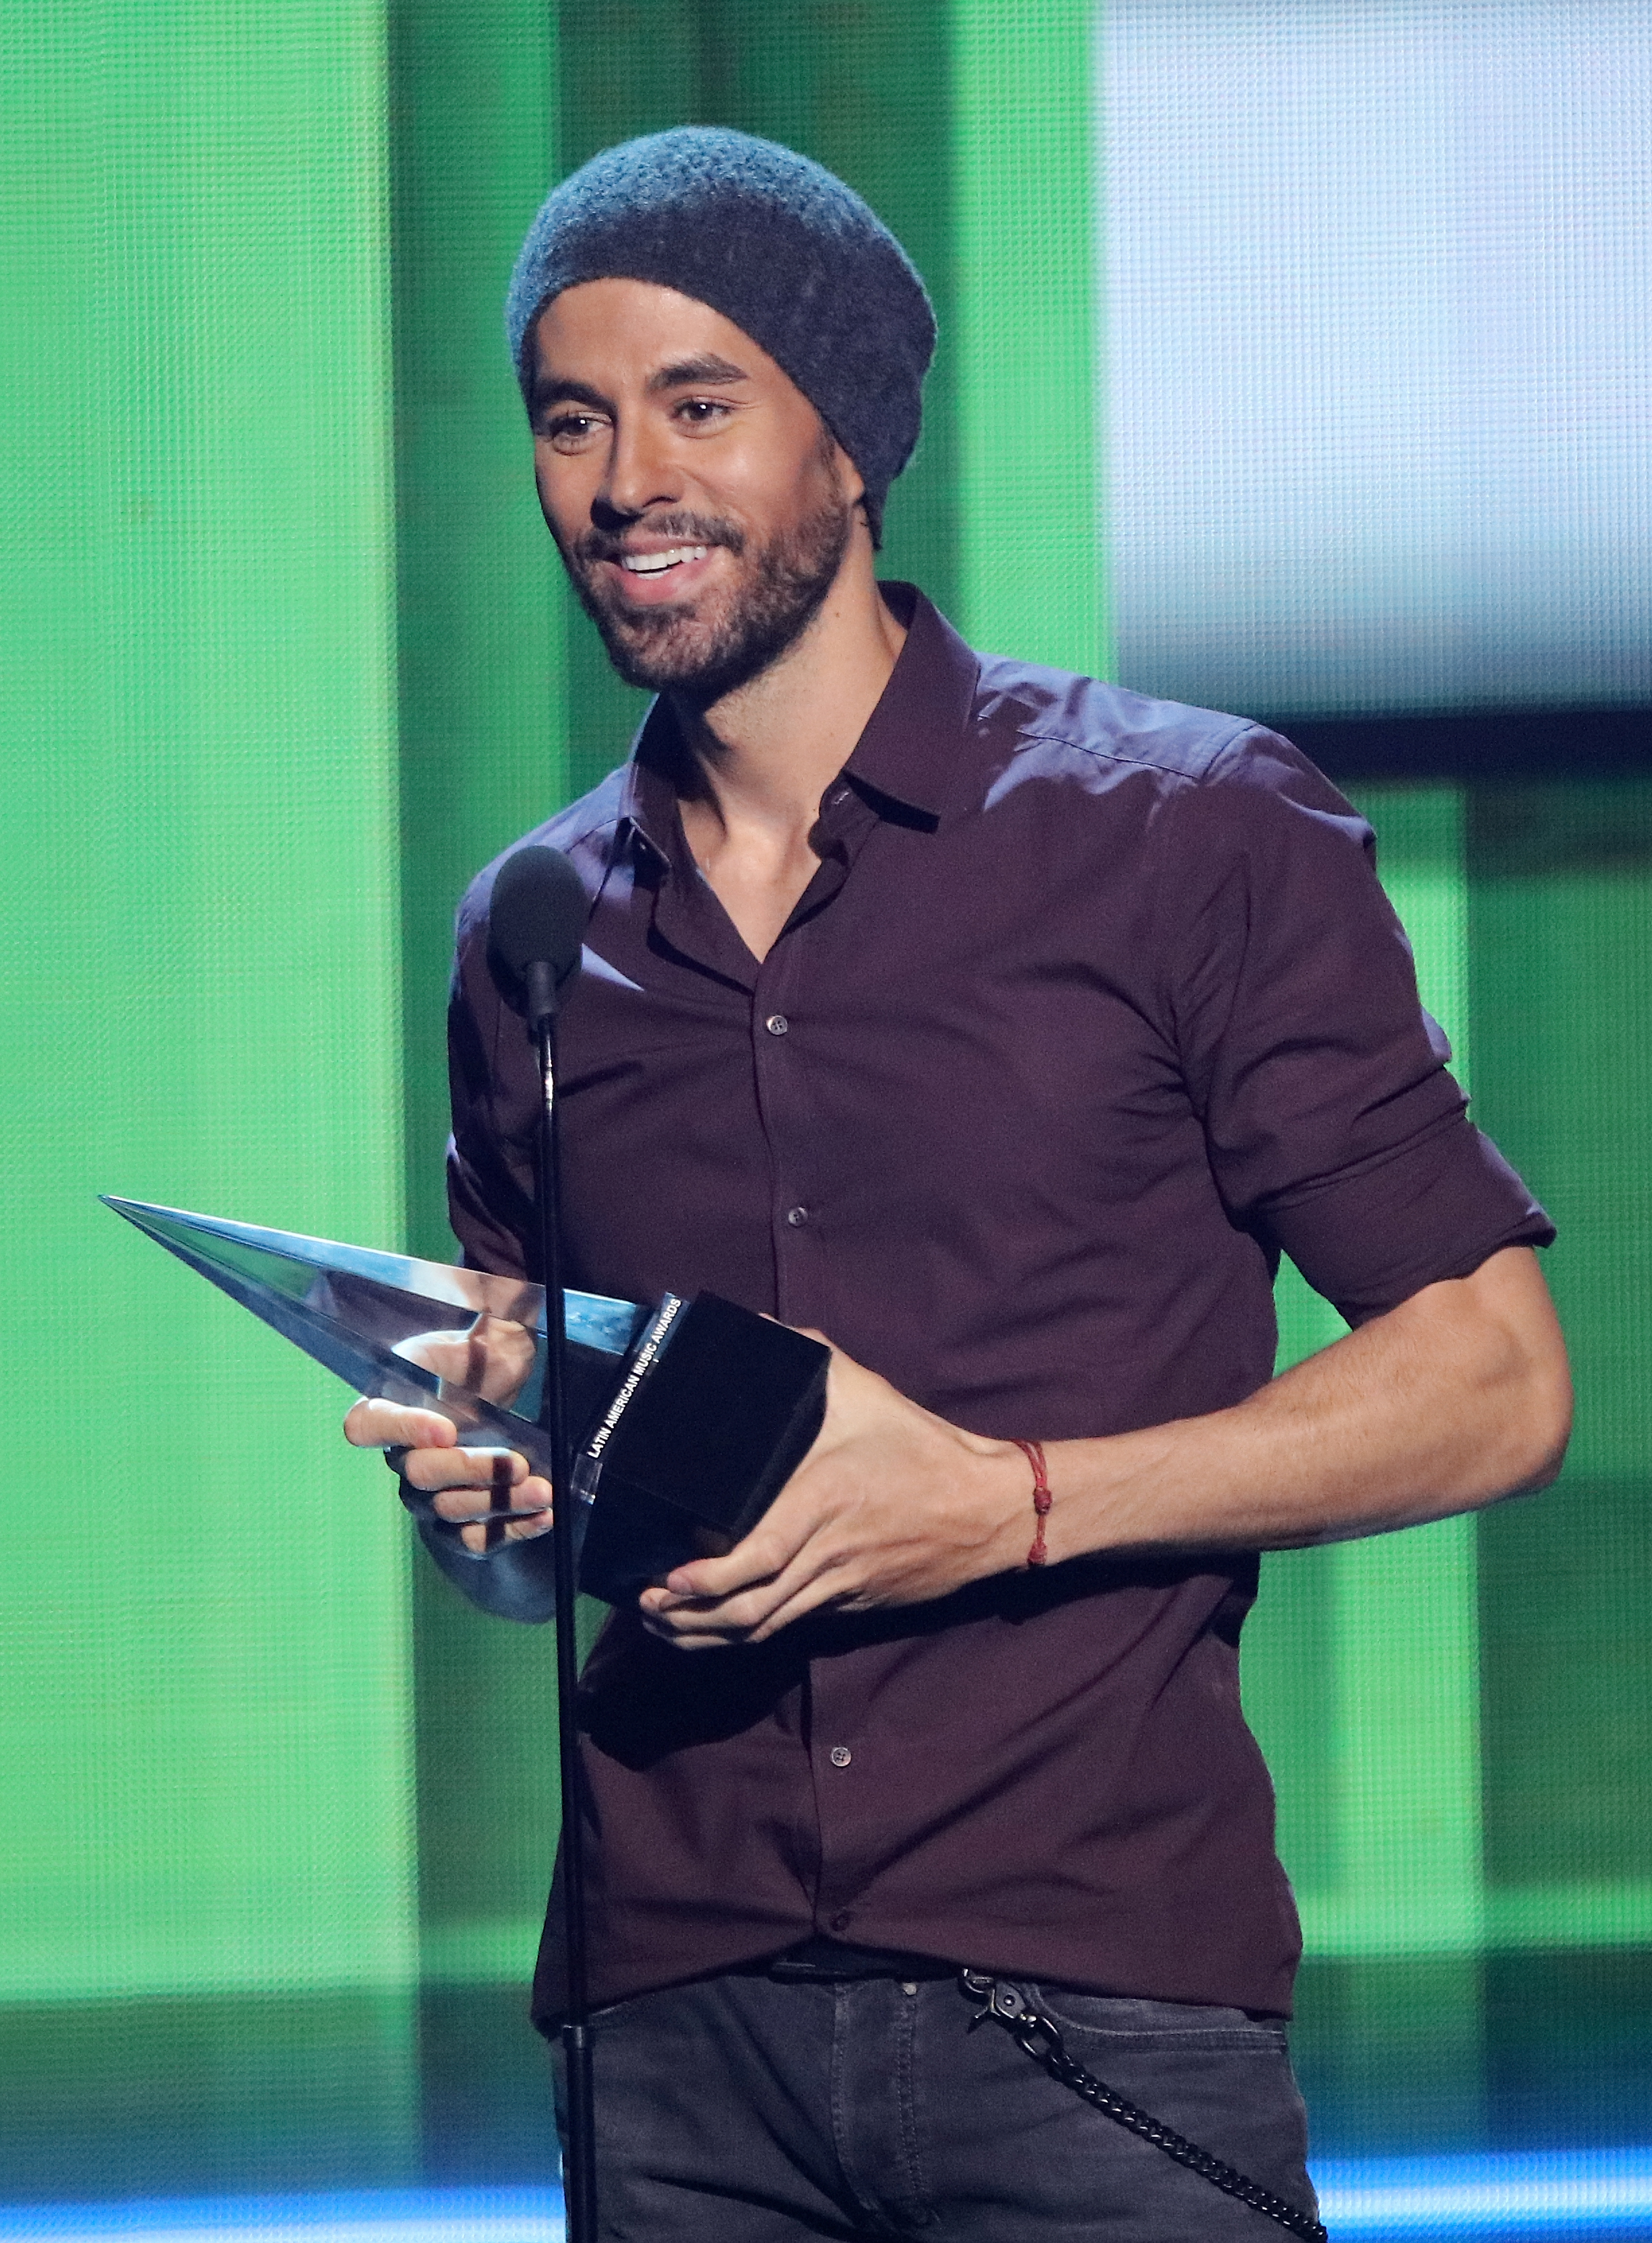 Enrique Iglesias accepts the 'Artist Of The Year' award during the 2017 Latin American Music Awards at Dolby Theatre in Hollywood, California on Oct. 26, 2017.